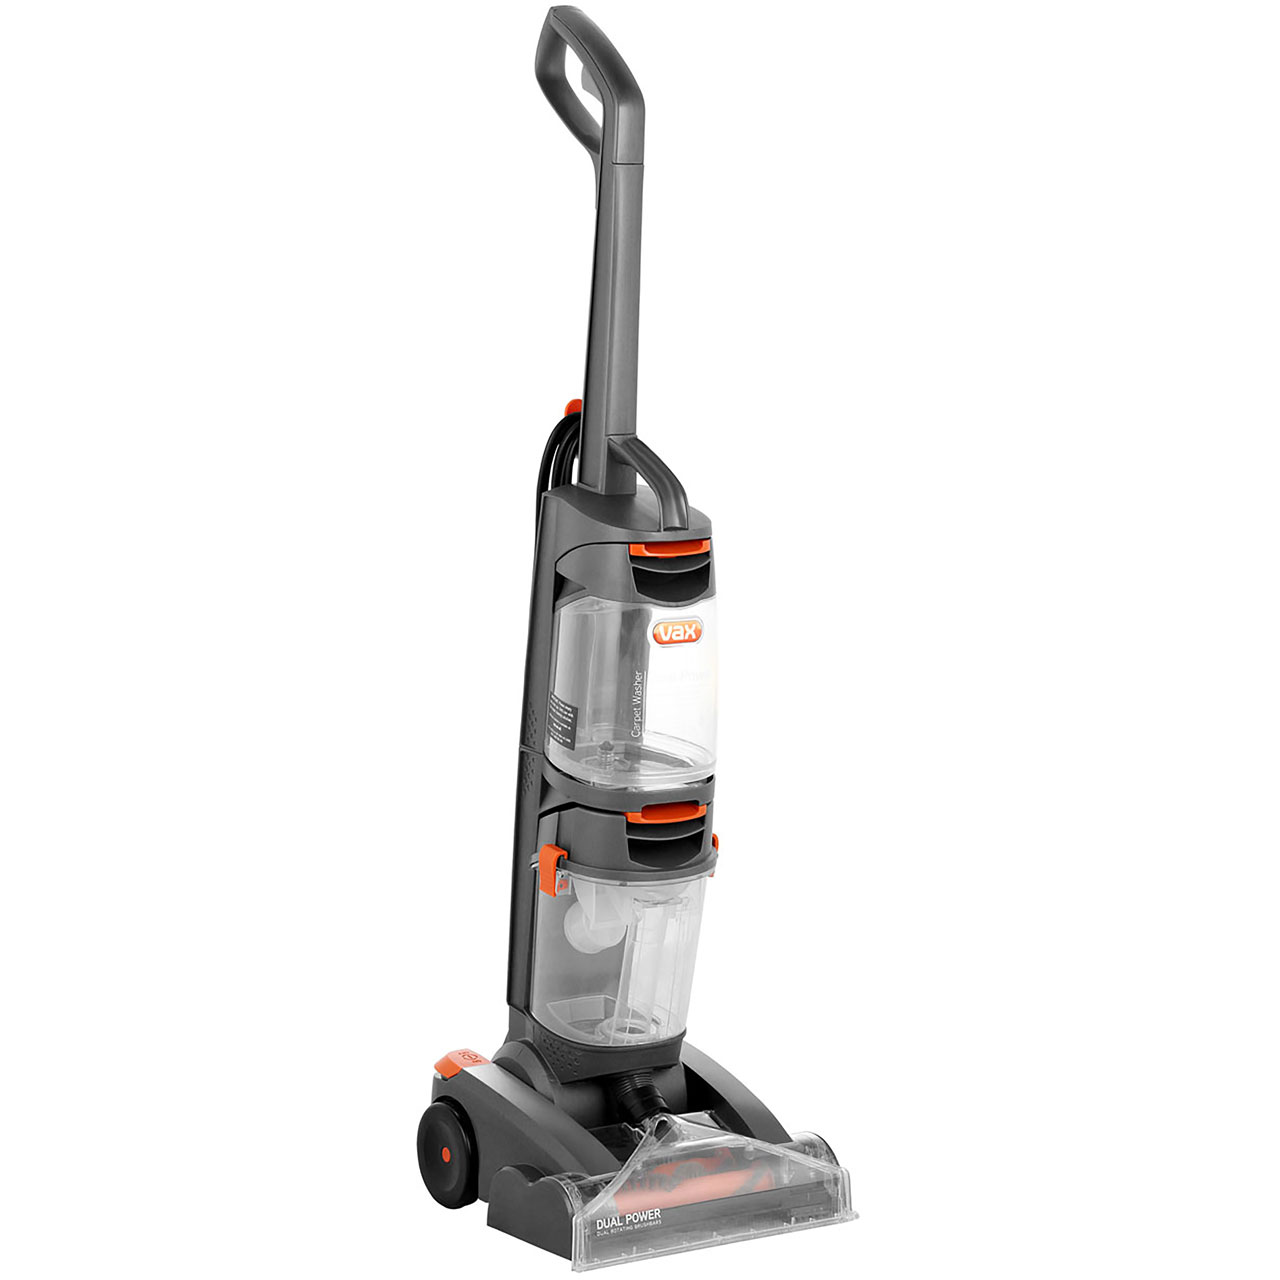 vax dual power w86 dp b carpet cleaner review. Black Bedroom Furniture Sets. Home Design Ideas